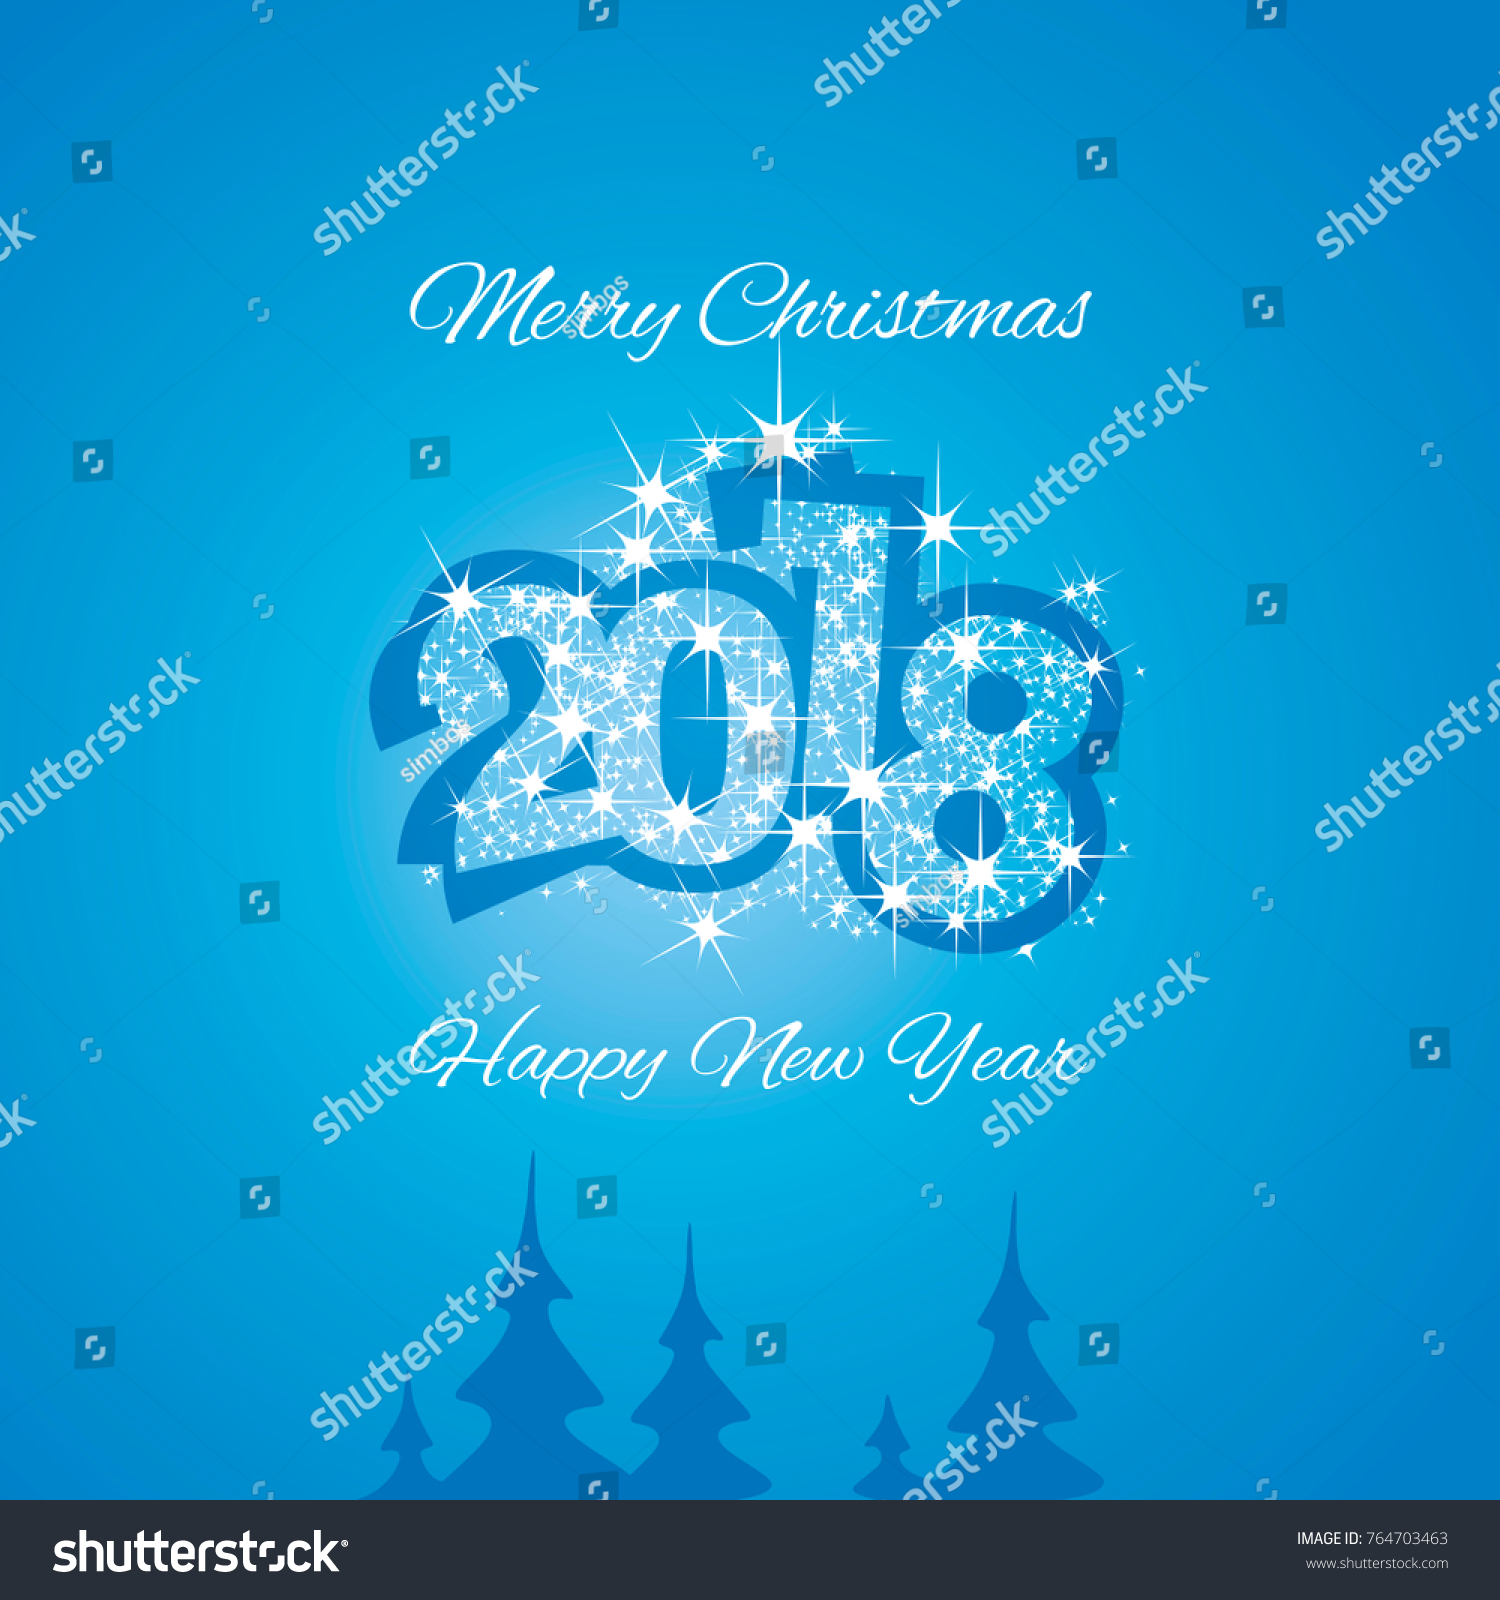 Christmas Happy New Year 2018 Blue Stock Vector Royalty Free